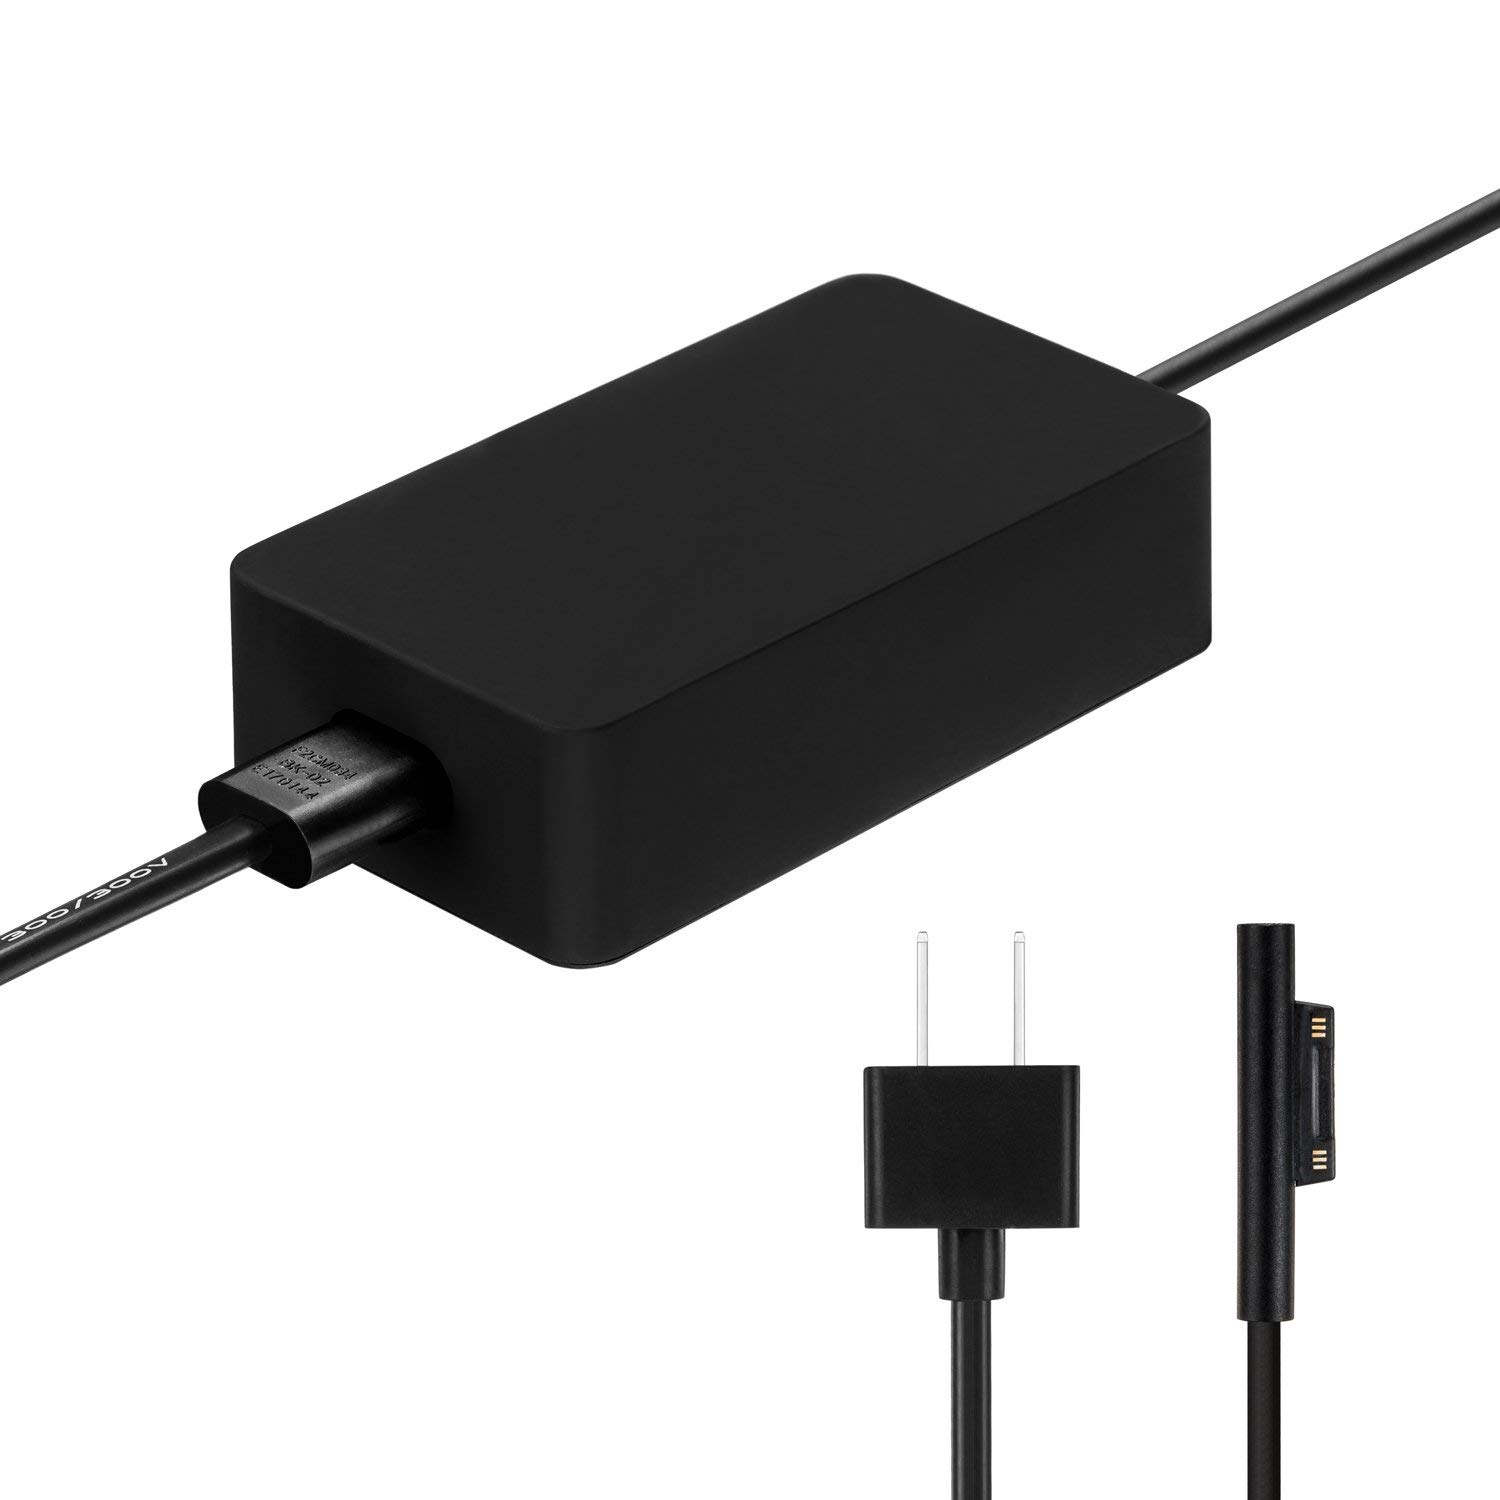 Egoway 65W 15V 4A AC Power Adapter Charger for Microsoft Surface Book Pro 3 Pro 4 Pro 5 with USB Charging Port 6 Ft Power Cord